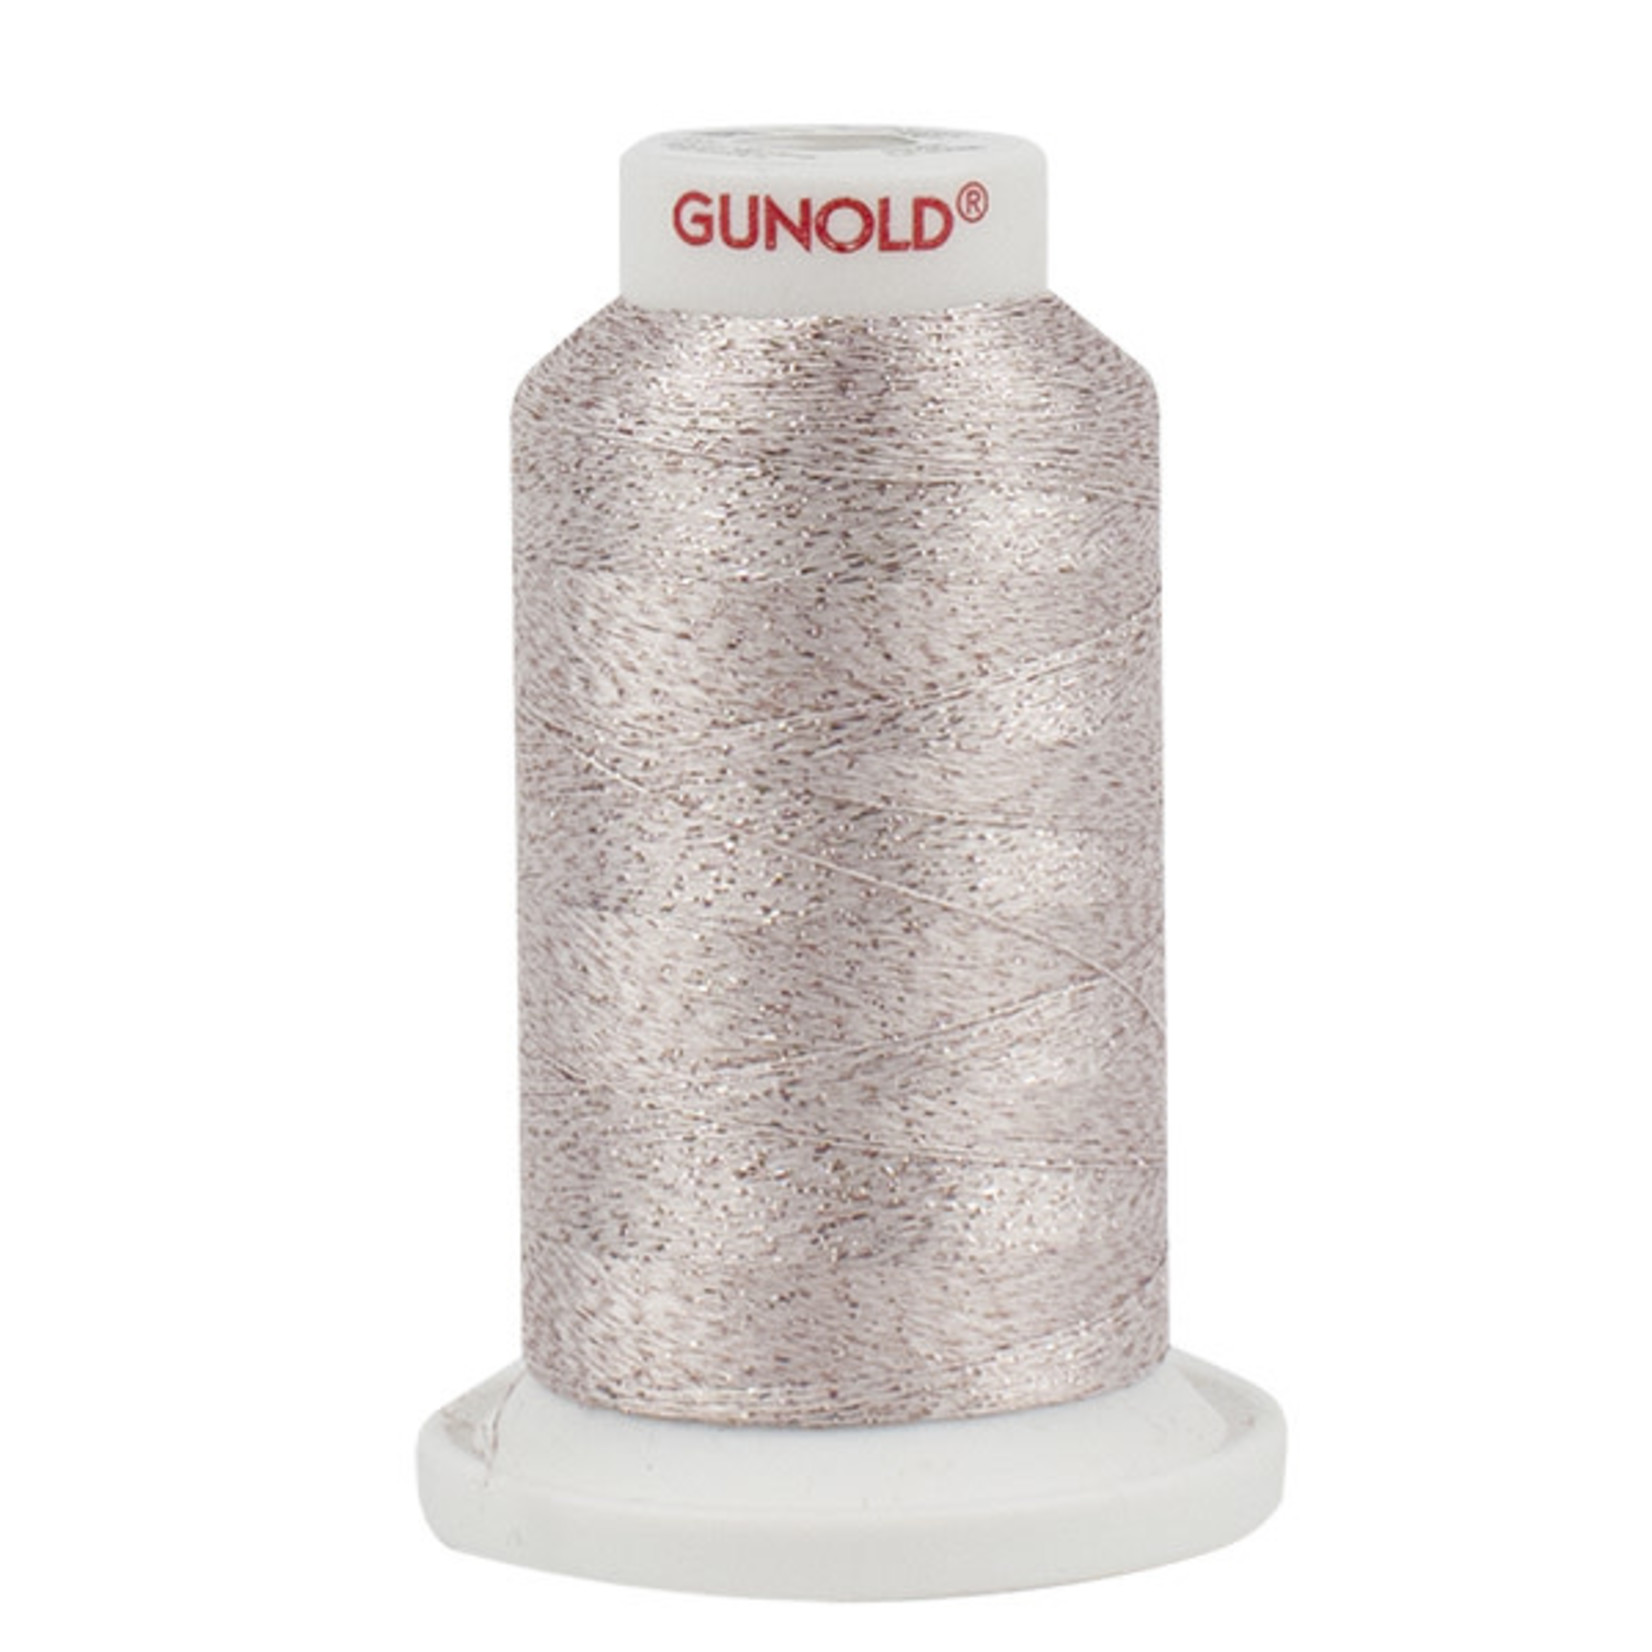 Gunold Poly Sparkle™ (Star™) Mini-King Cone 1,100 YD, 30 Wt, Light Blush with Tone On Tone Sparkle 50517